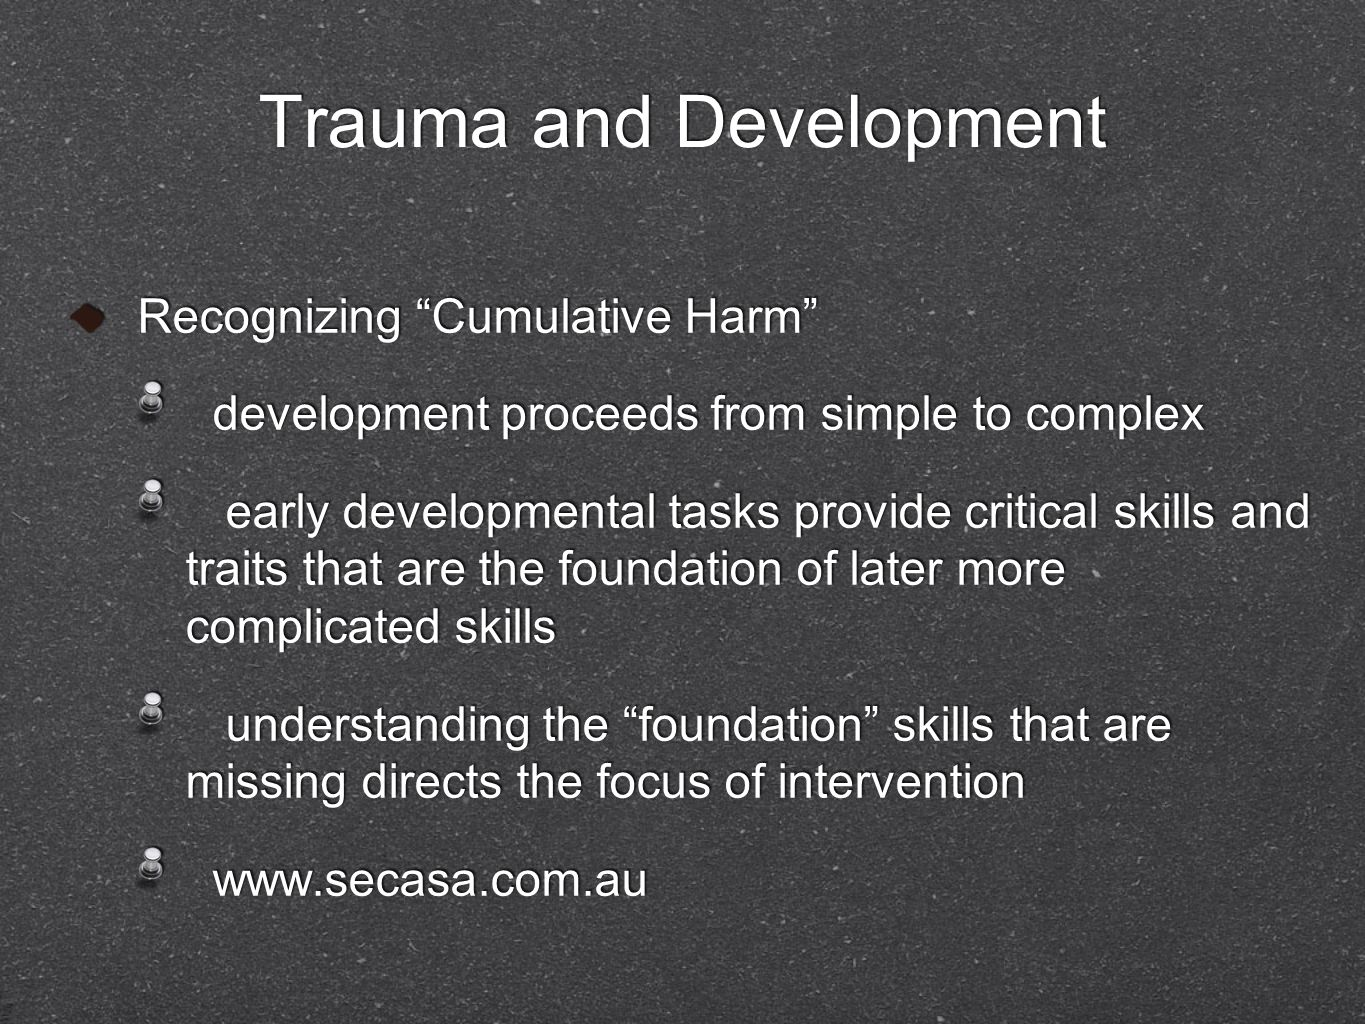 Trauma and Development